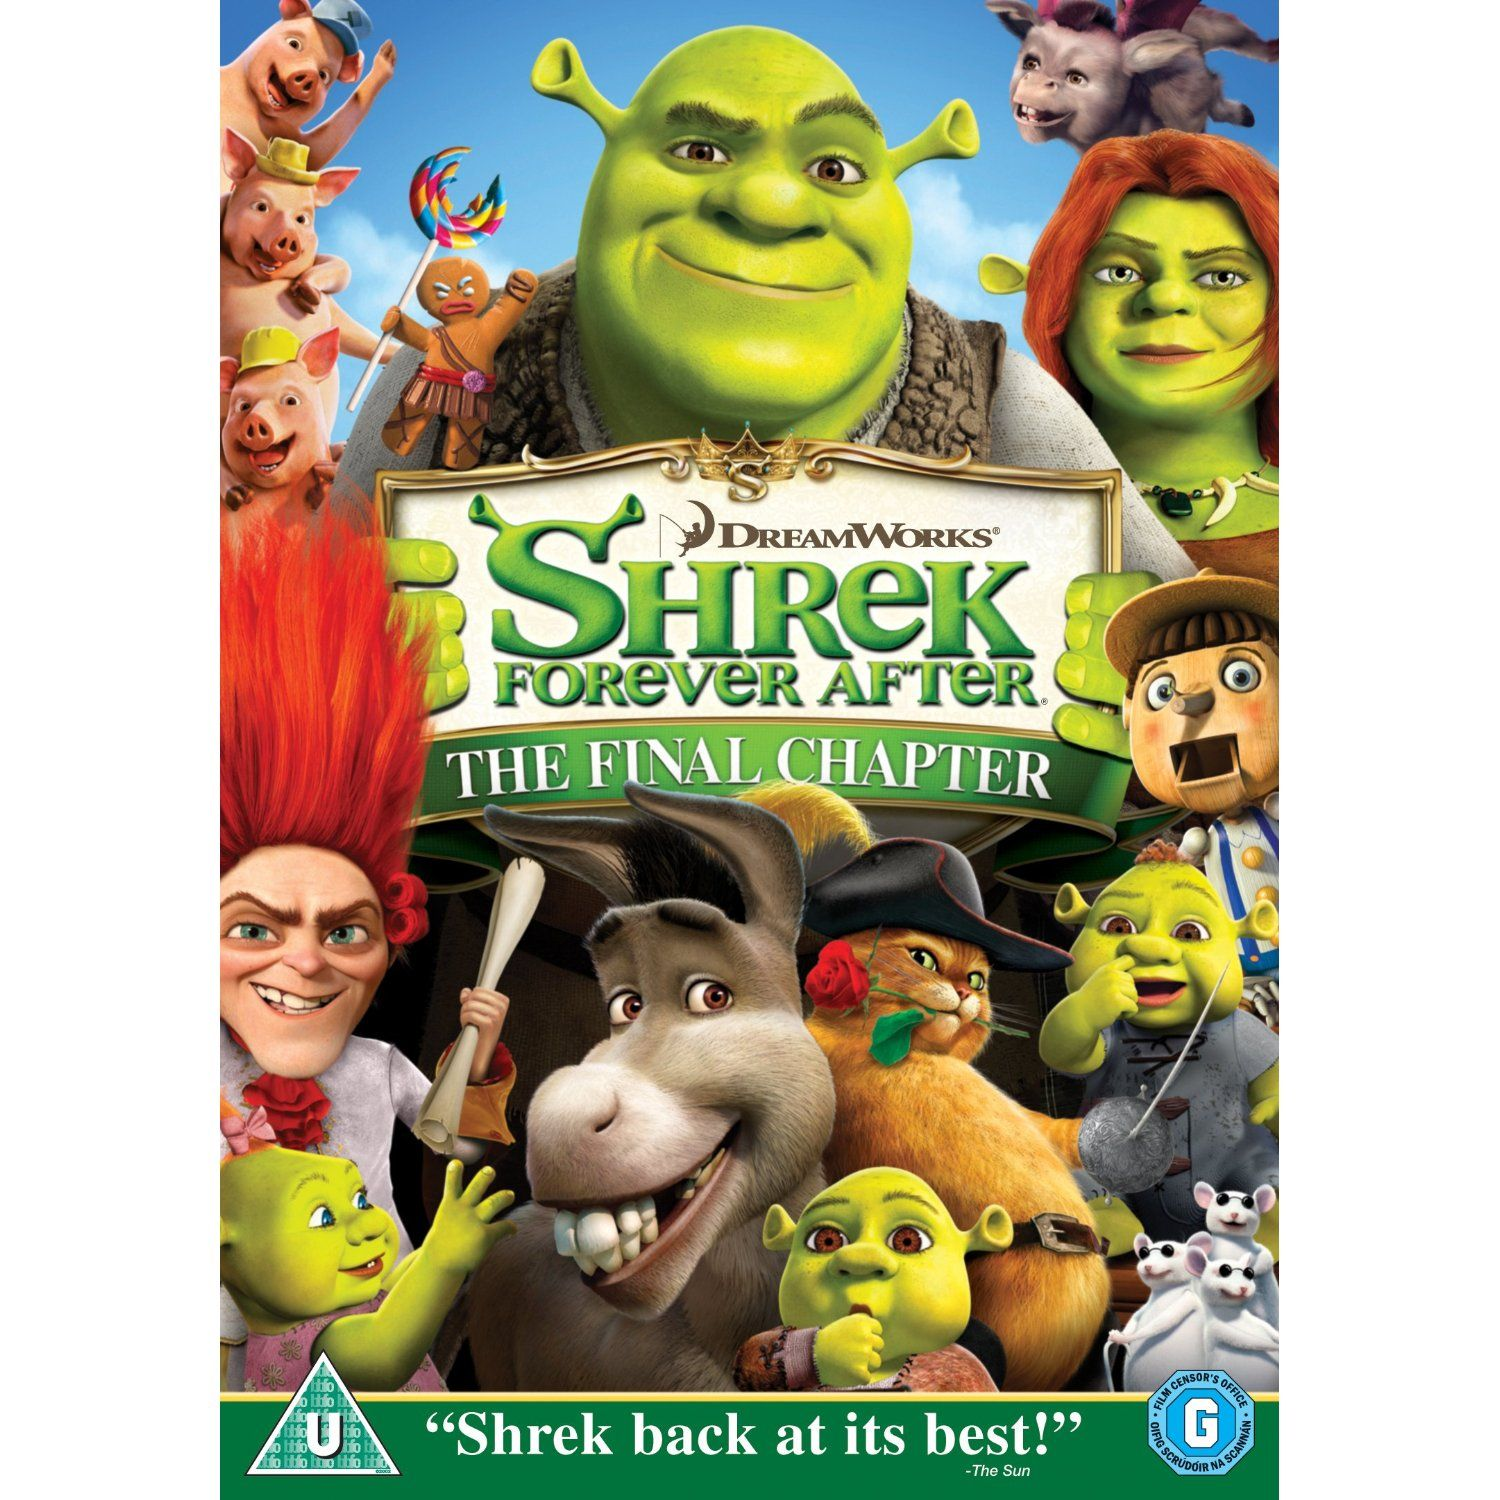 Shrek Forever After The Final Chapter (2010), directed by